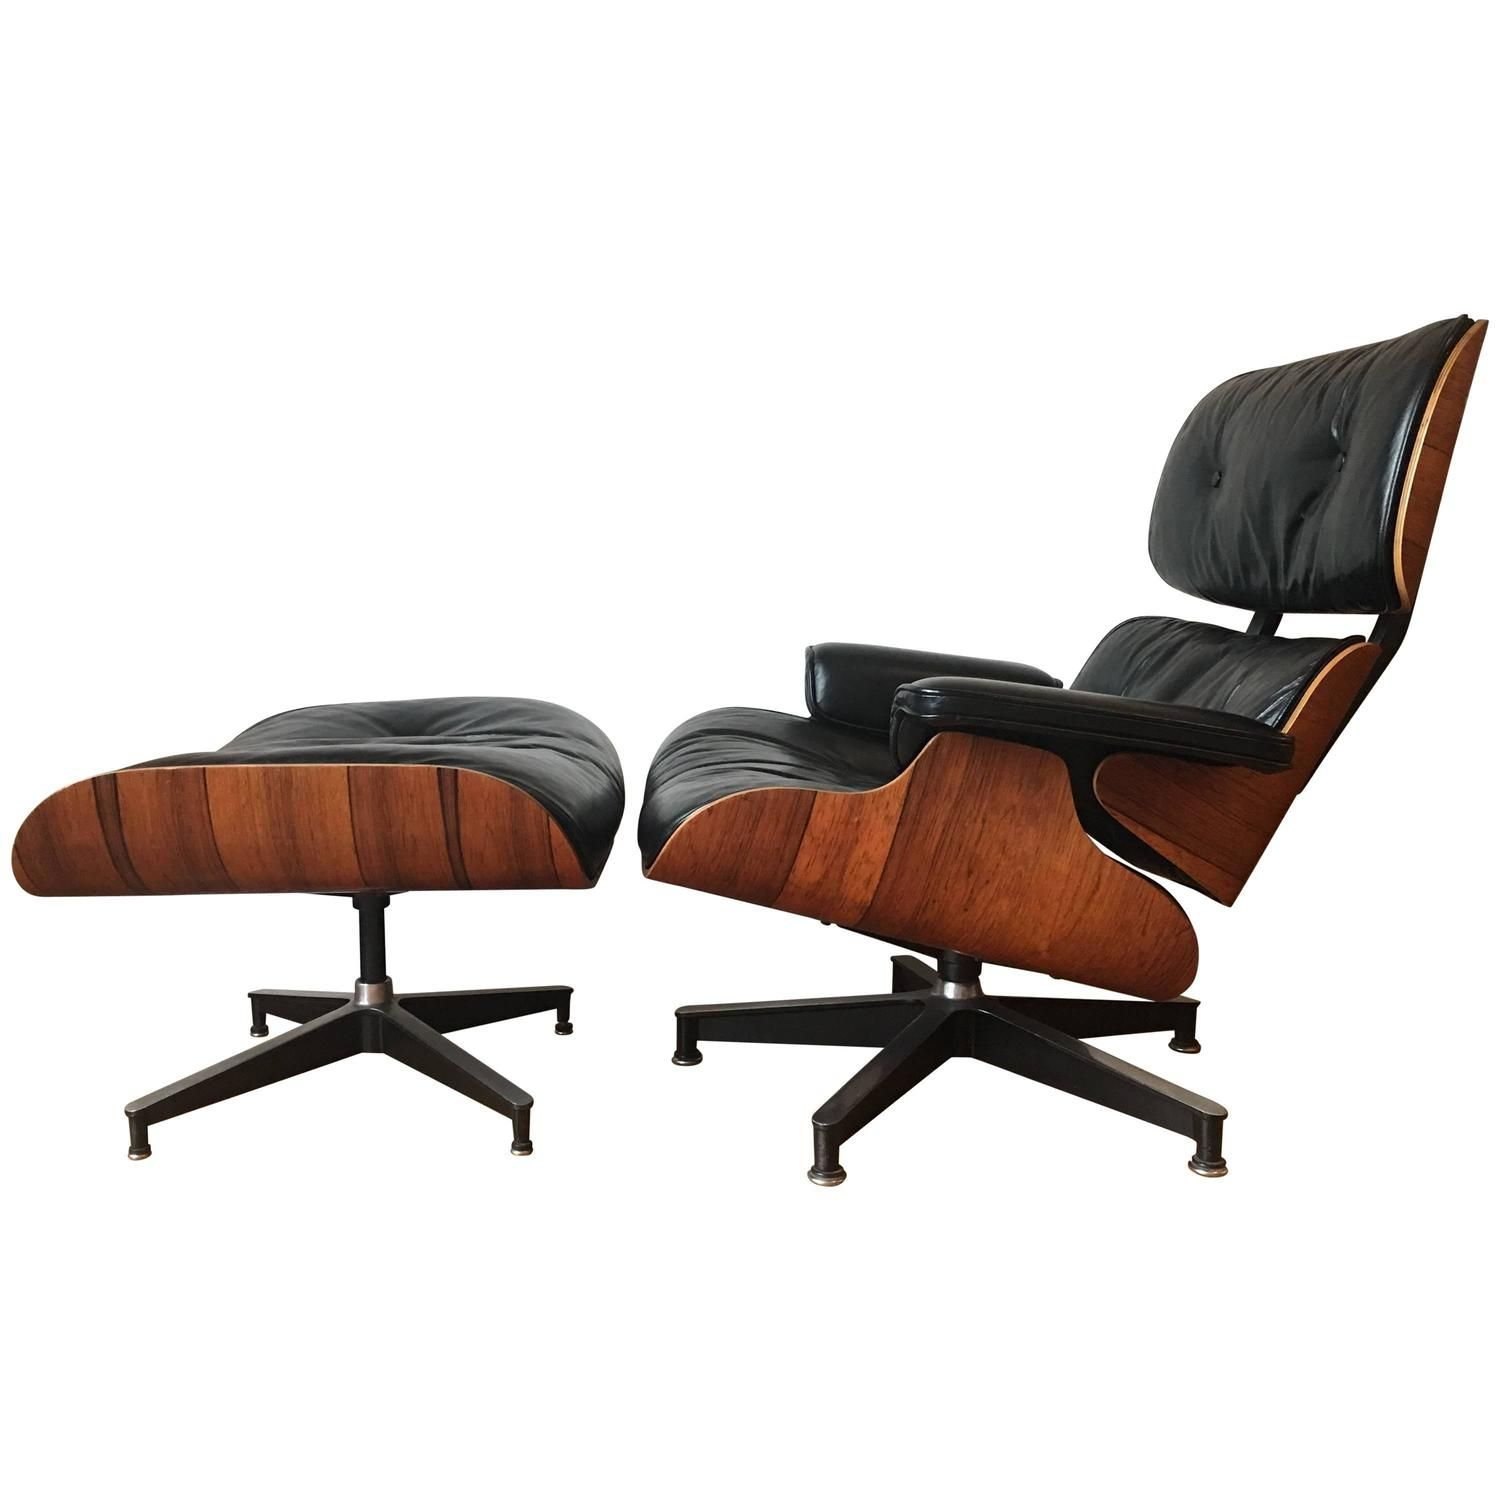 Near Mint Condition 1960s Herman Miller Eames Lounge Chair And Ottoman Eames Lounge Eames Lounge Chair Lounge Chair